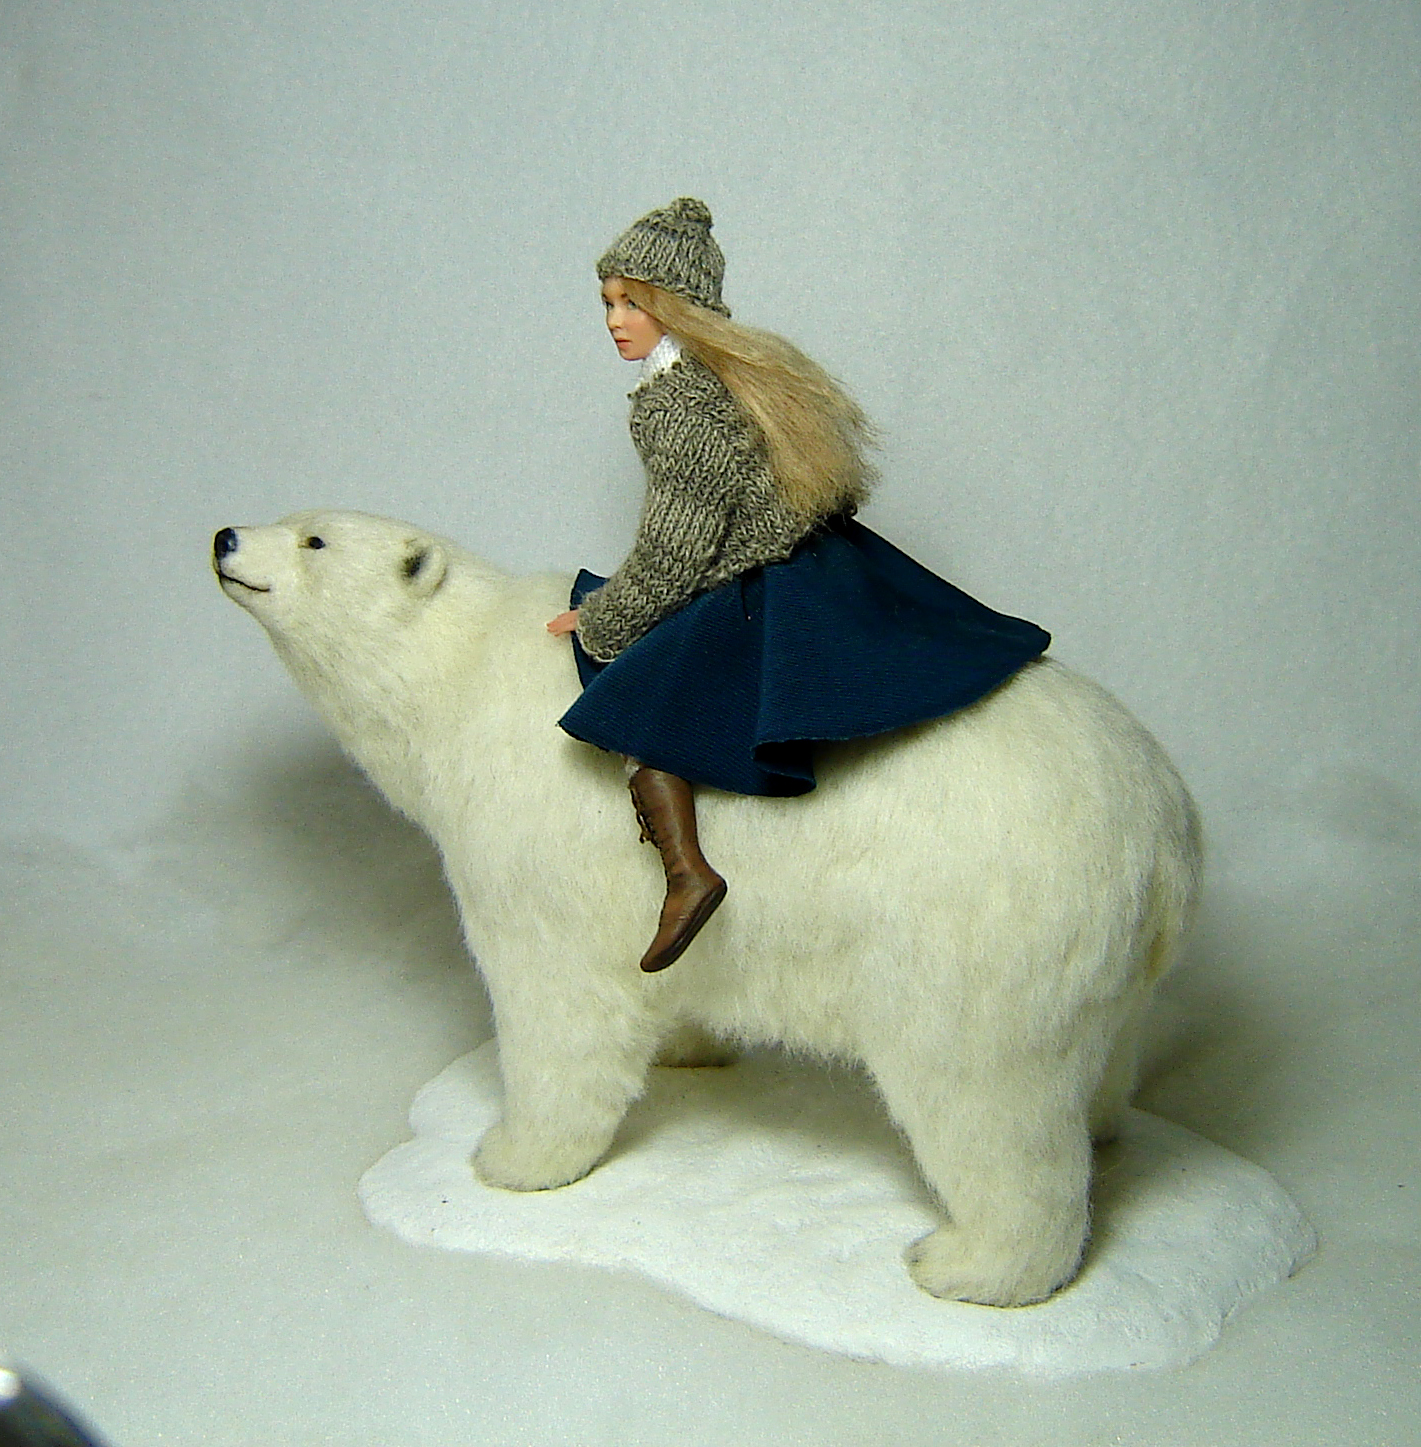 girl bear 1:12 scale sculpture dolls